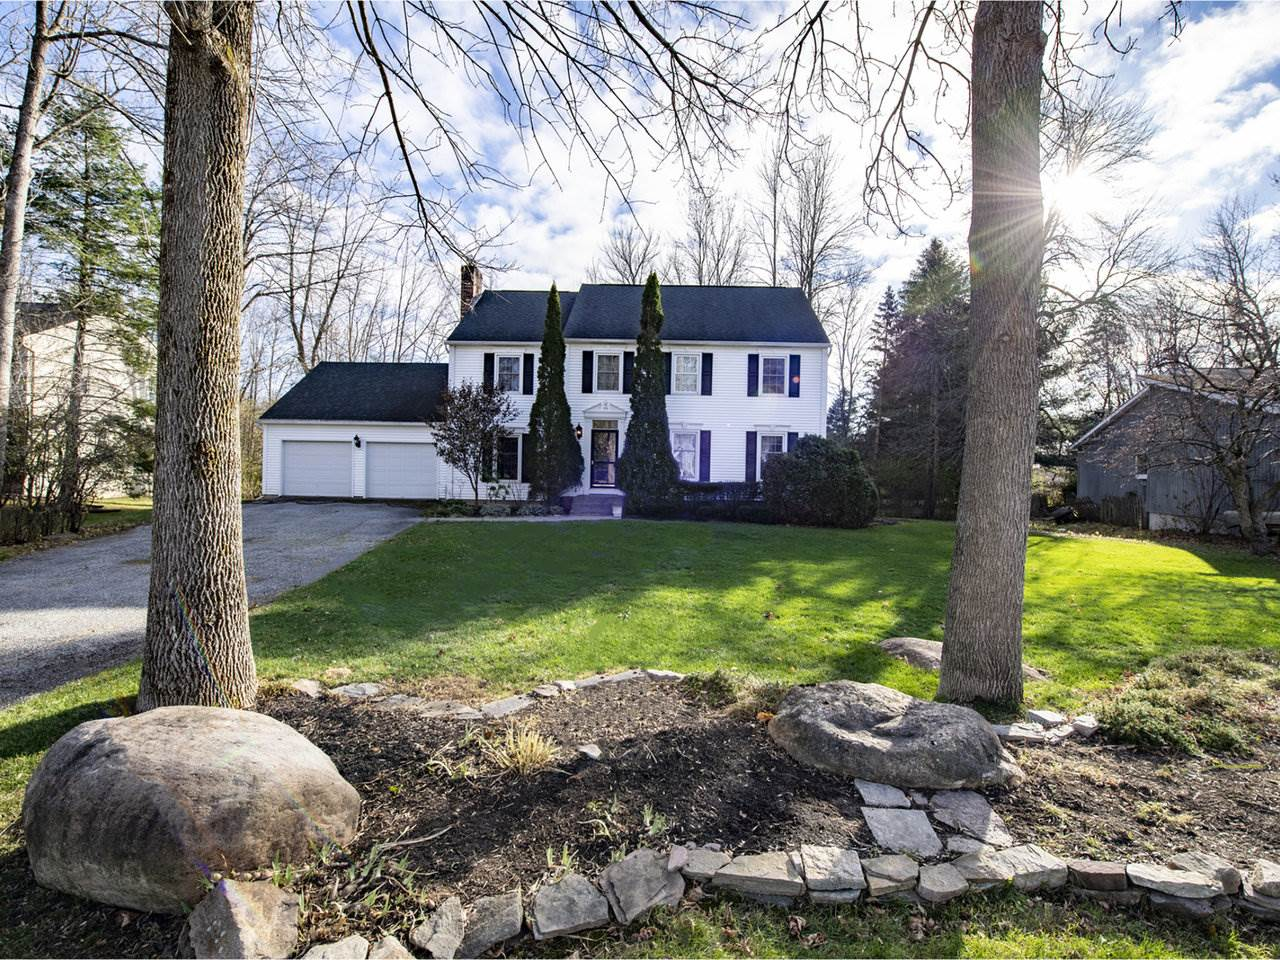 Sold property in Shelburne